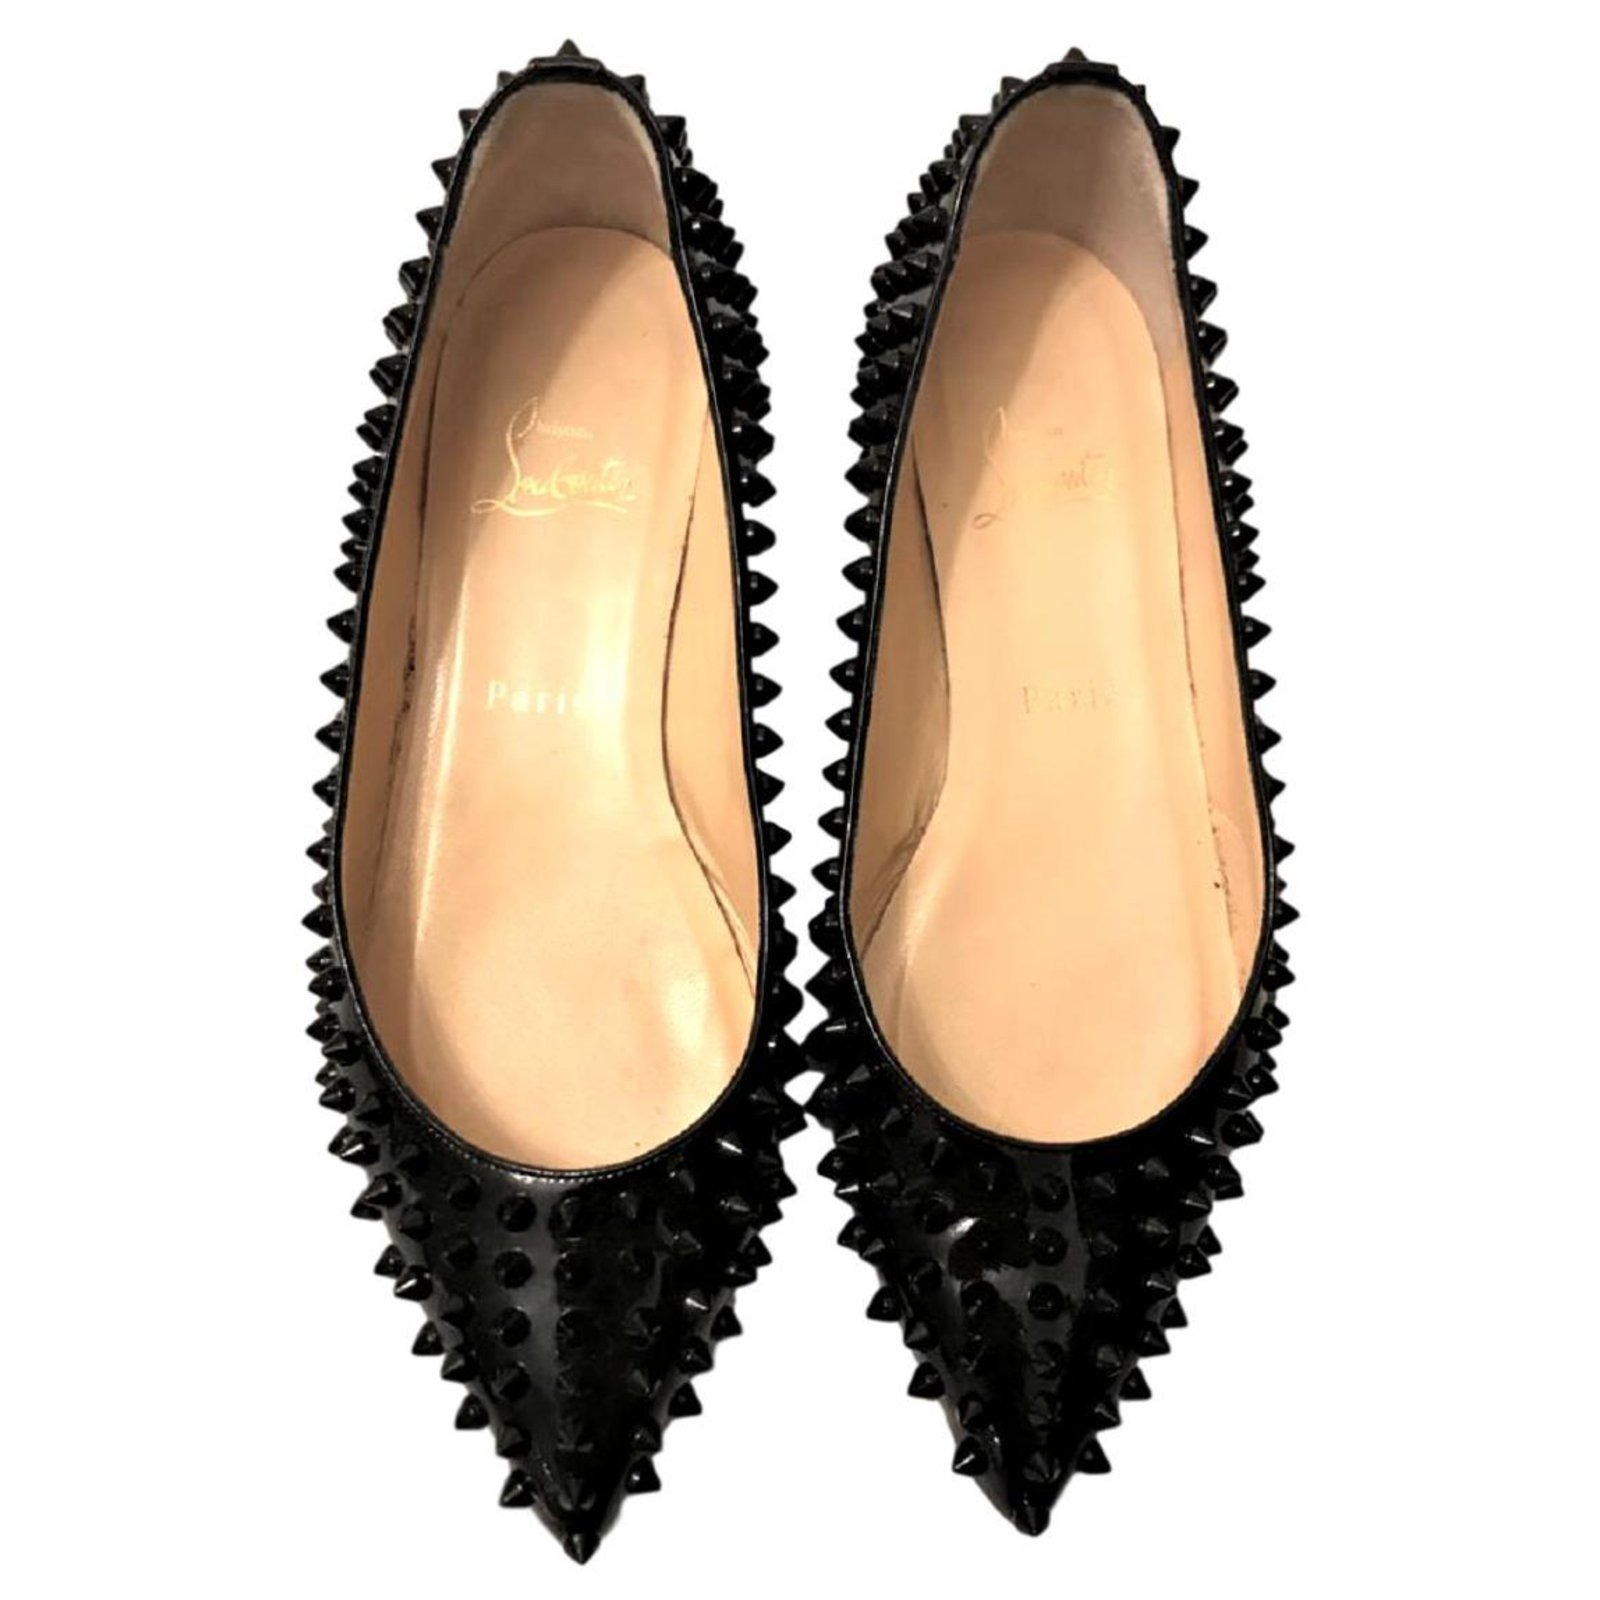 promo code 10b01 d933e Christian Louboutin Black Patent Pigalle spiked flats EU38